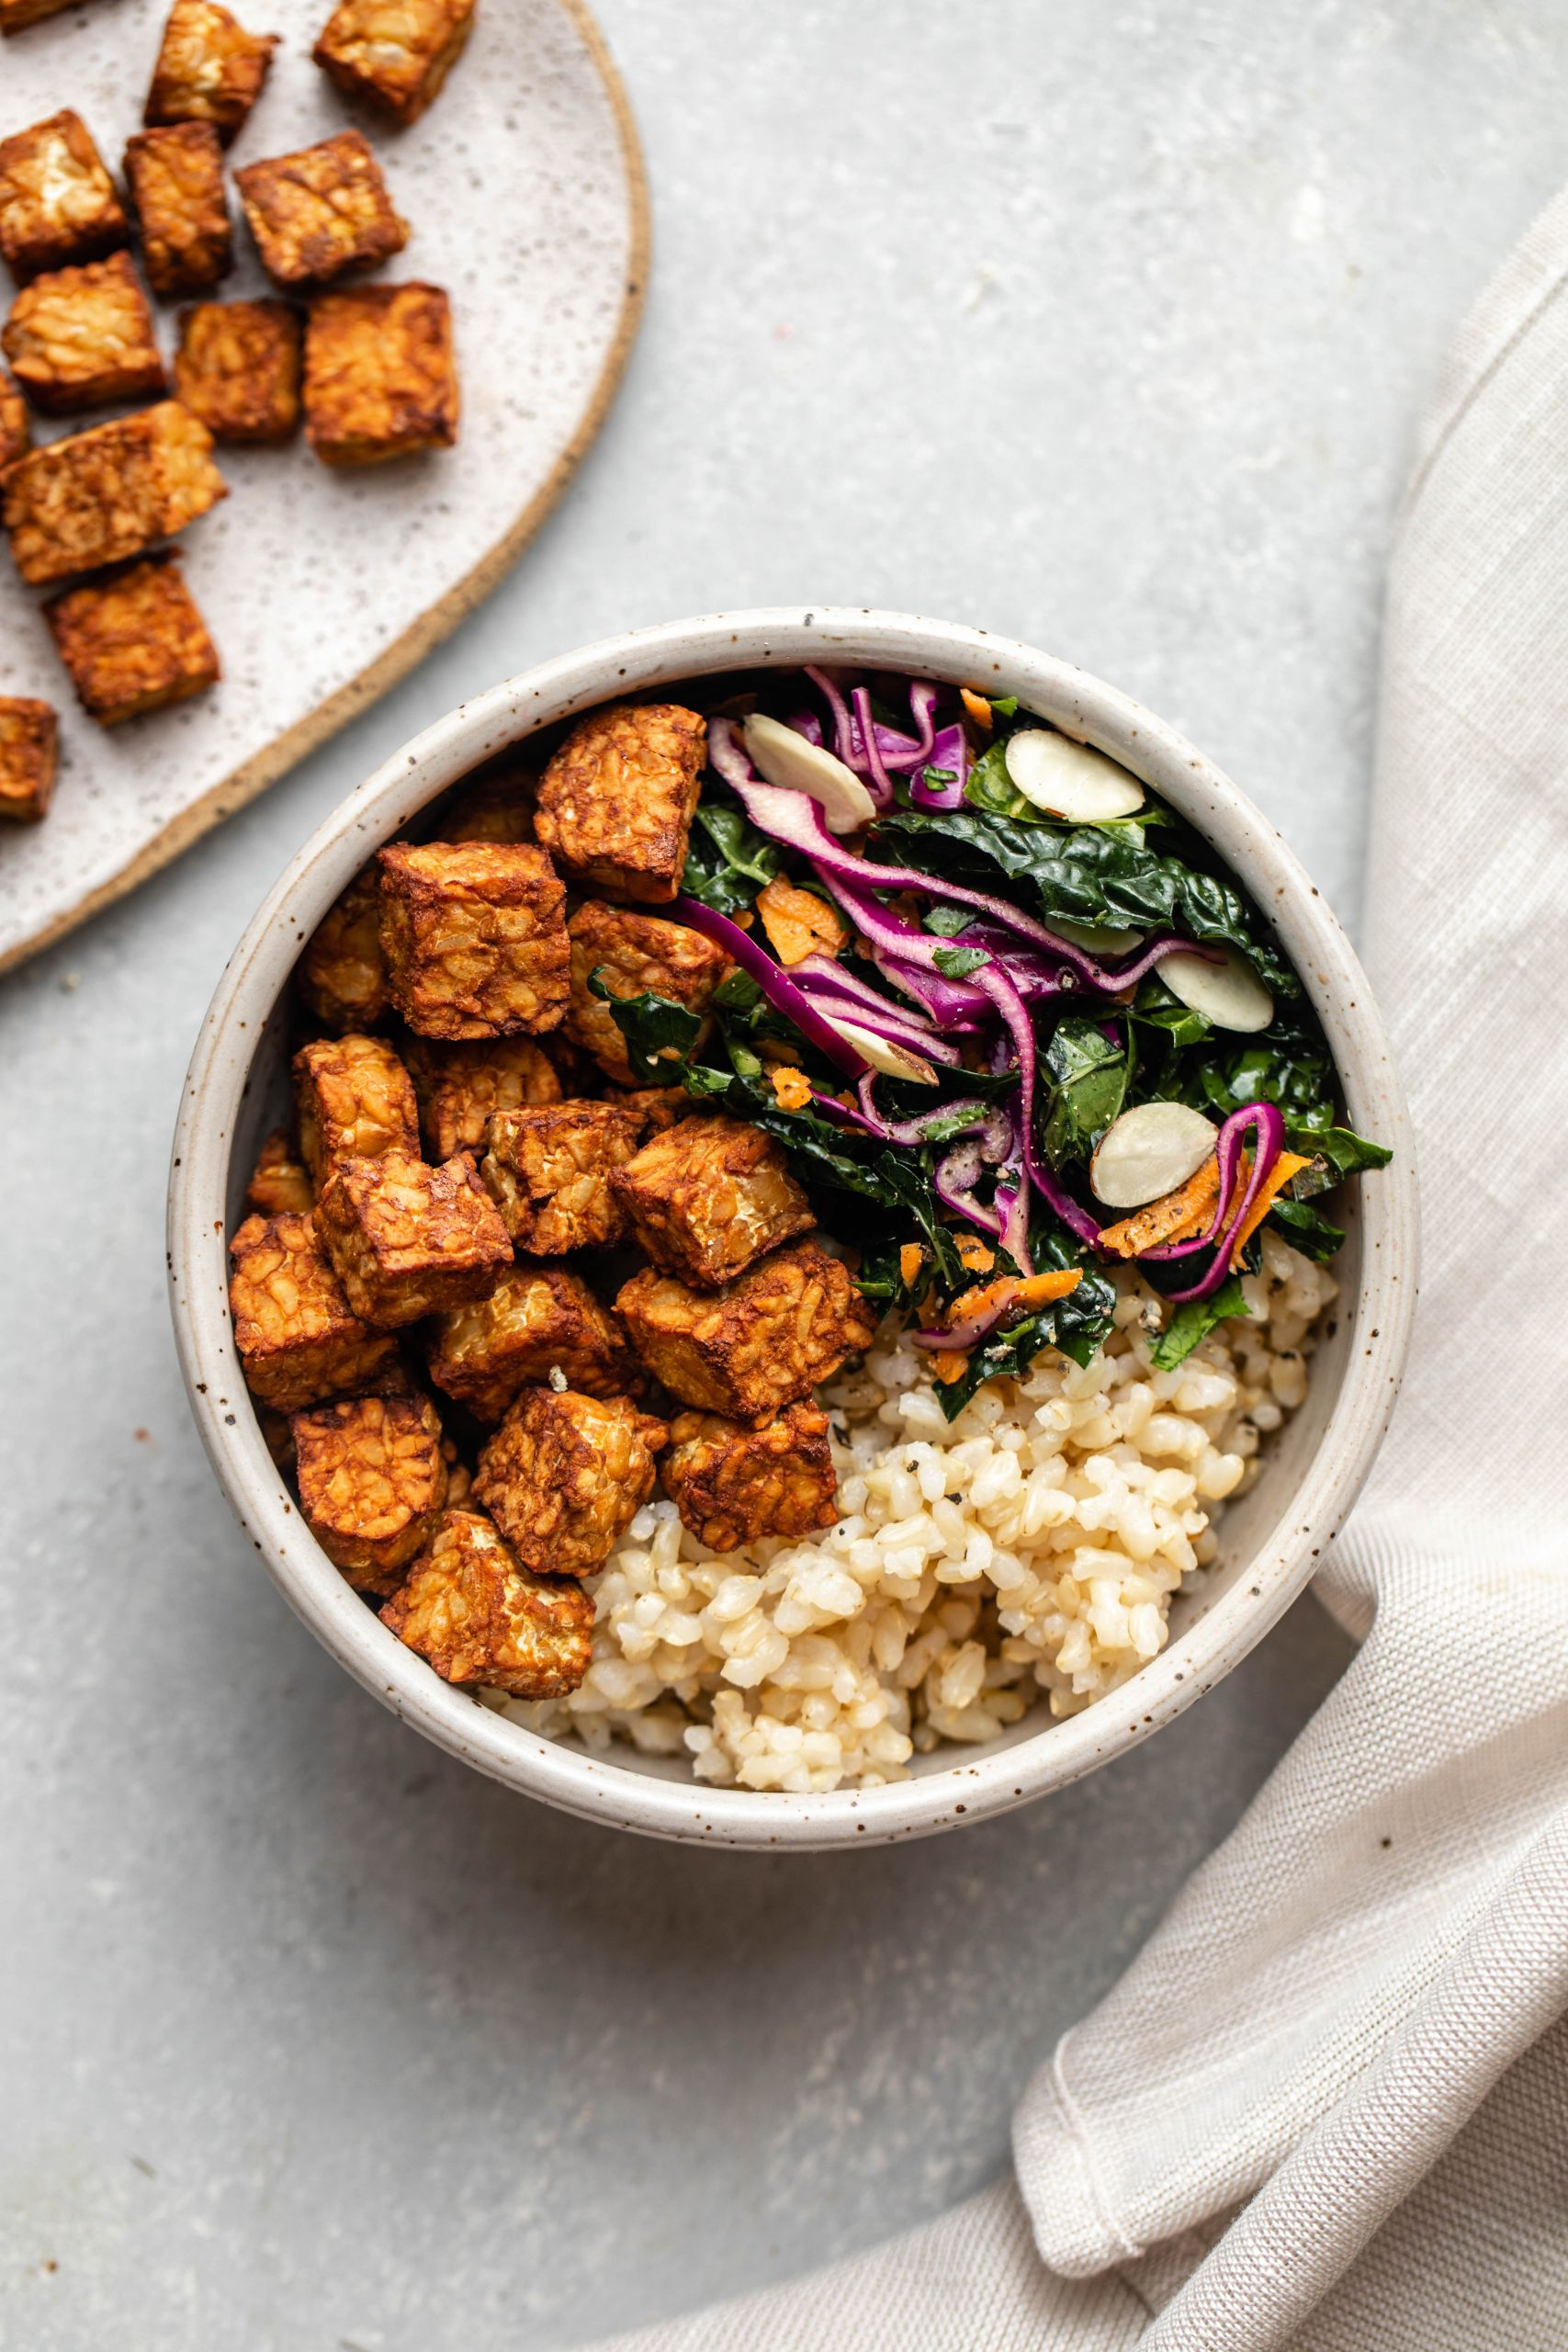 Recipes Using Tempeh  Easy Baked Tempeh 3 Ingre nts SO Crispy From My Bowl